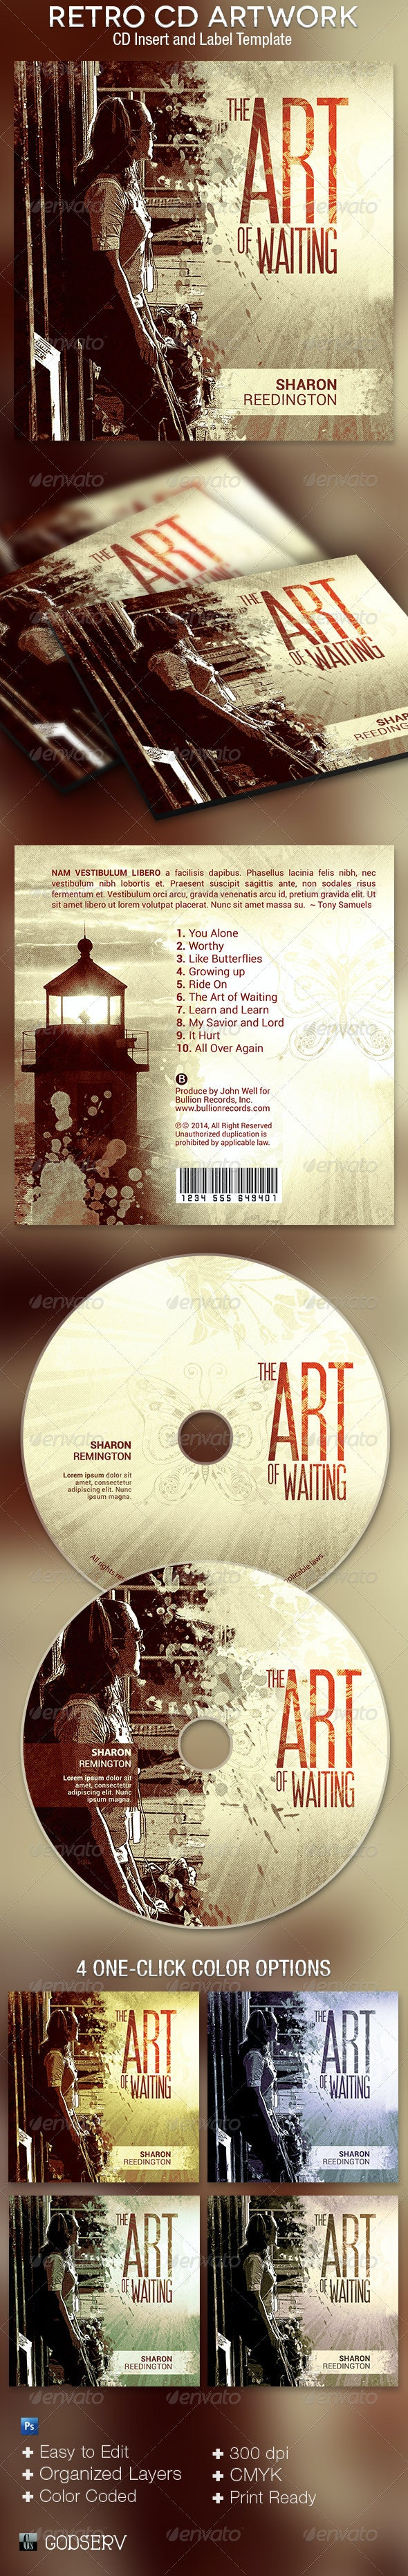 Retro CD Artwork Photoshop Template - CD & DVD Artwork Print Templates